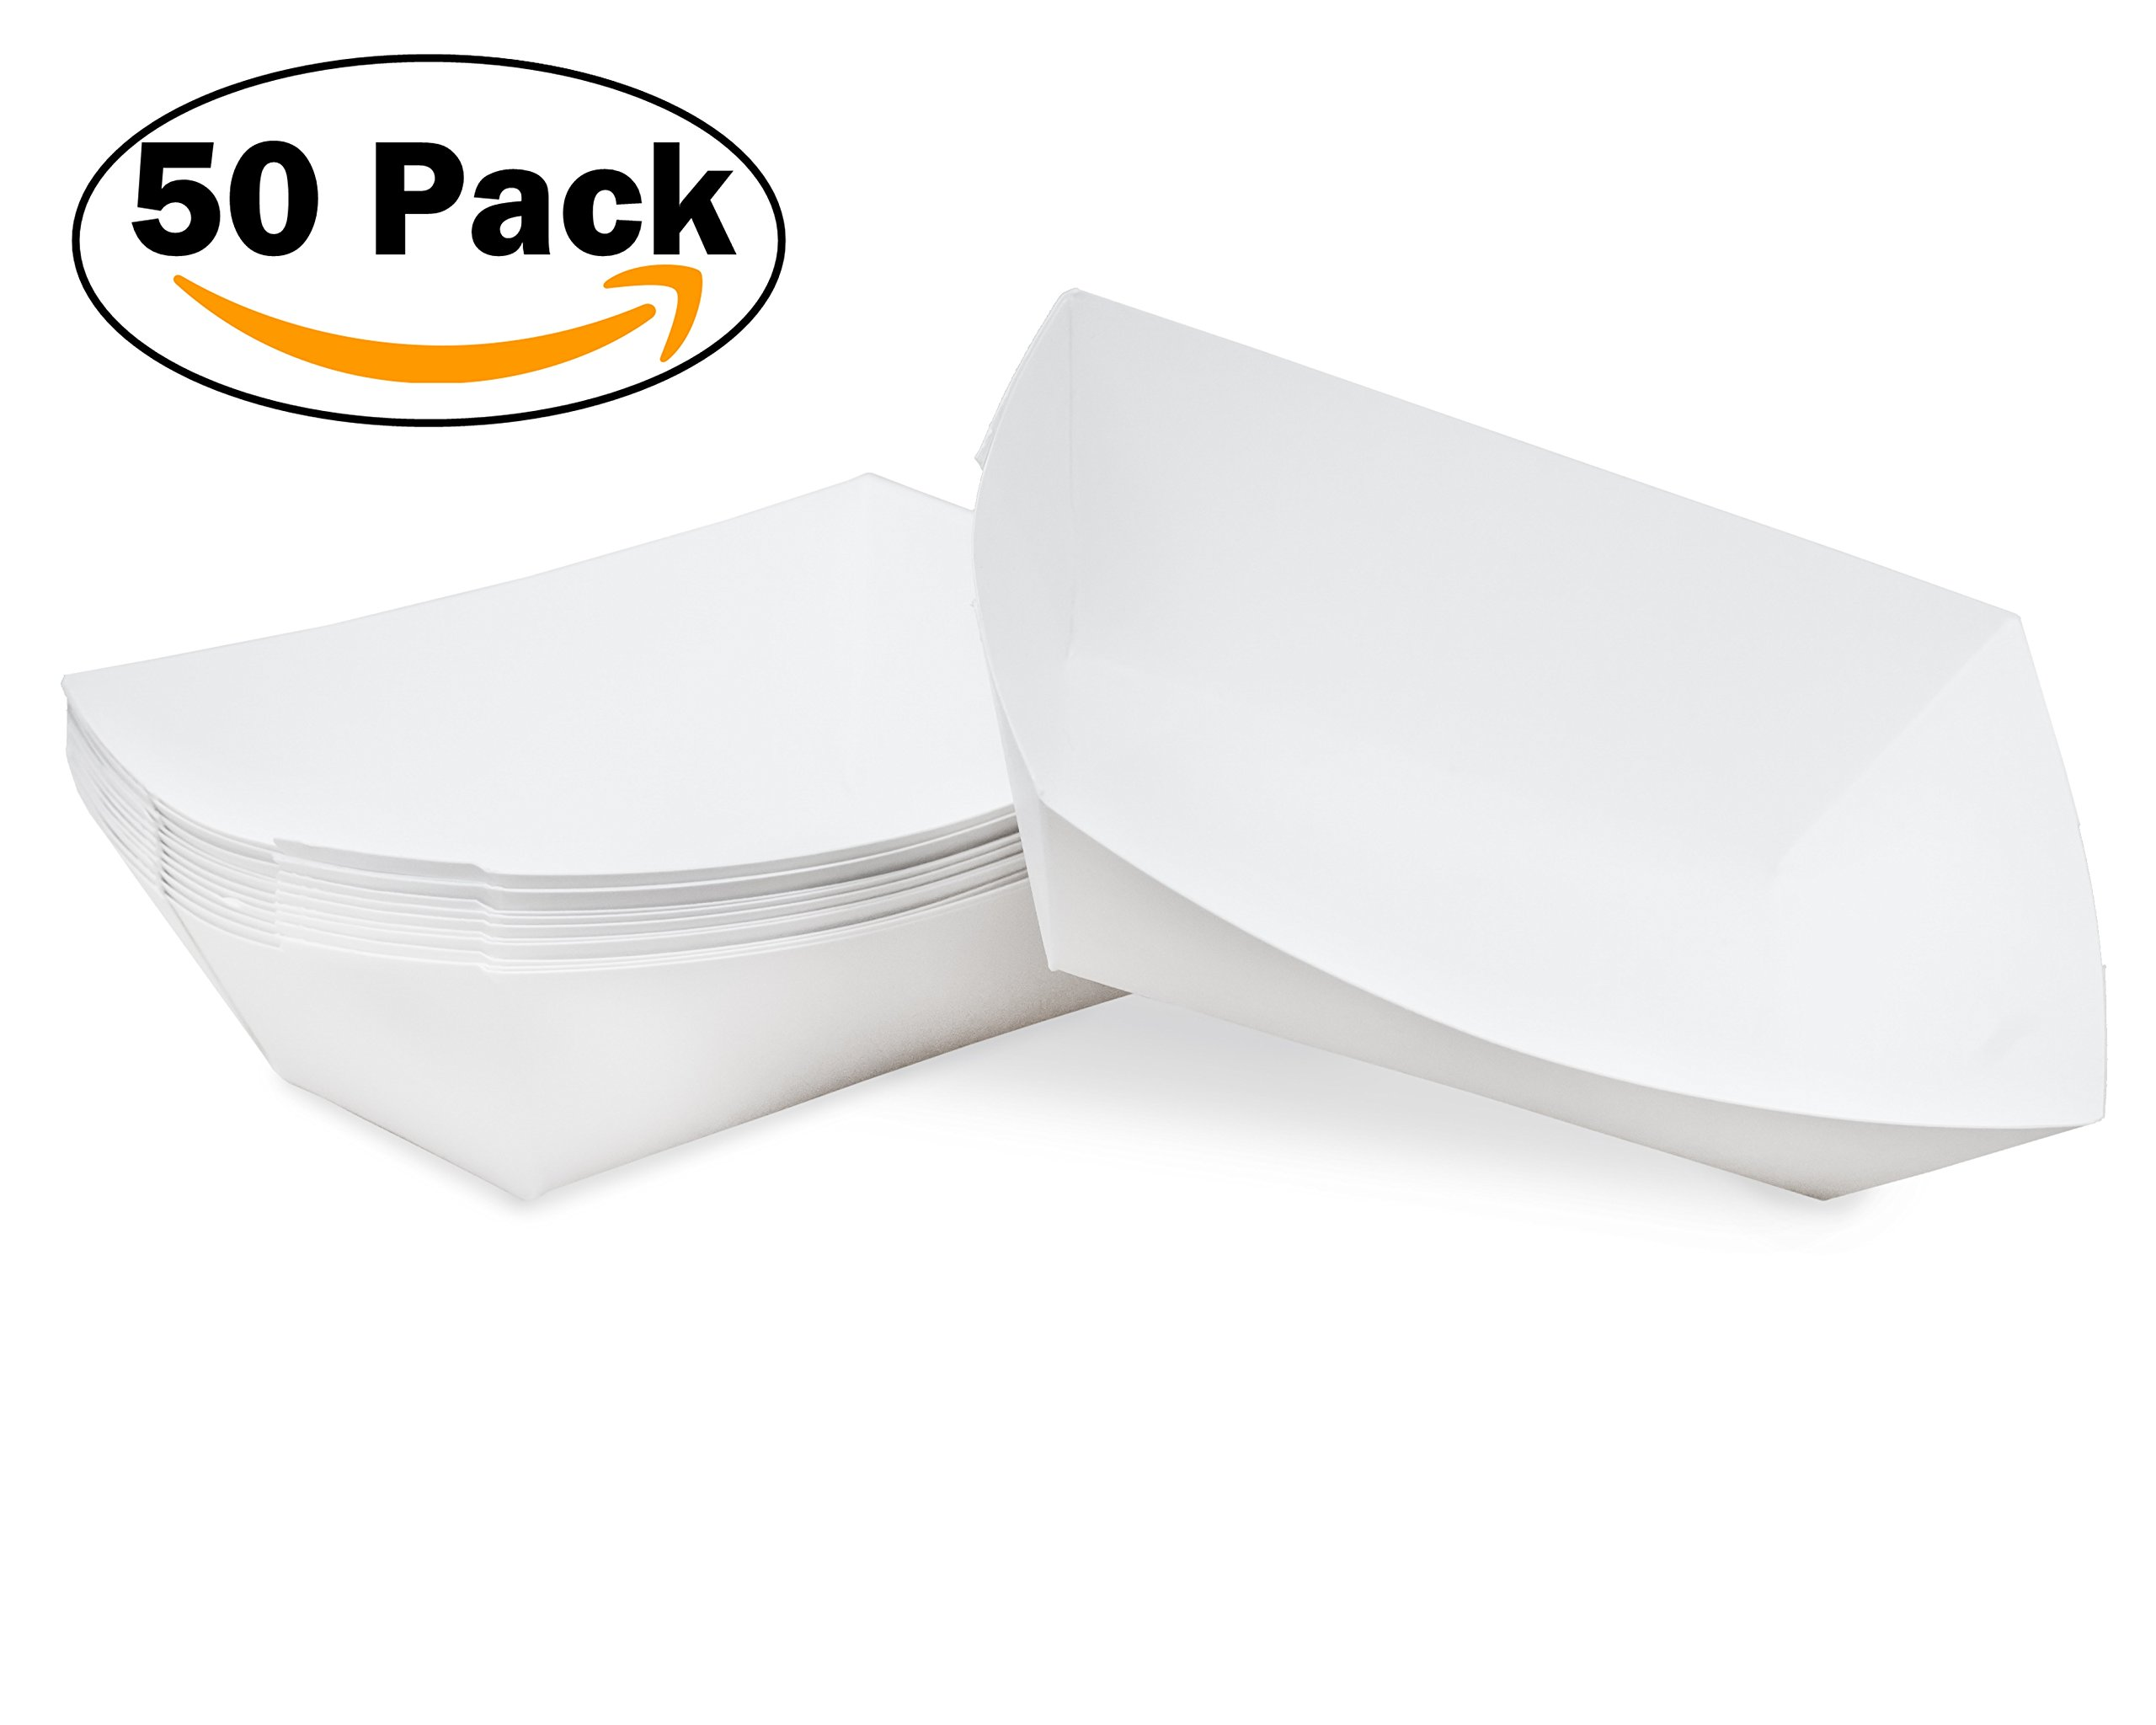 1/2 lb White Disposable Paper Food Tray for Carnivals, Fairs, Festivals, Concession Stands, Food Trucks (White - extra small 1/2 lb, 50 pack)